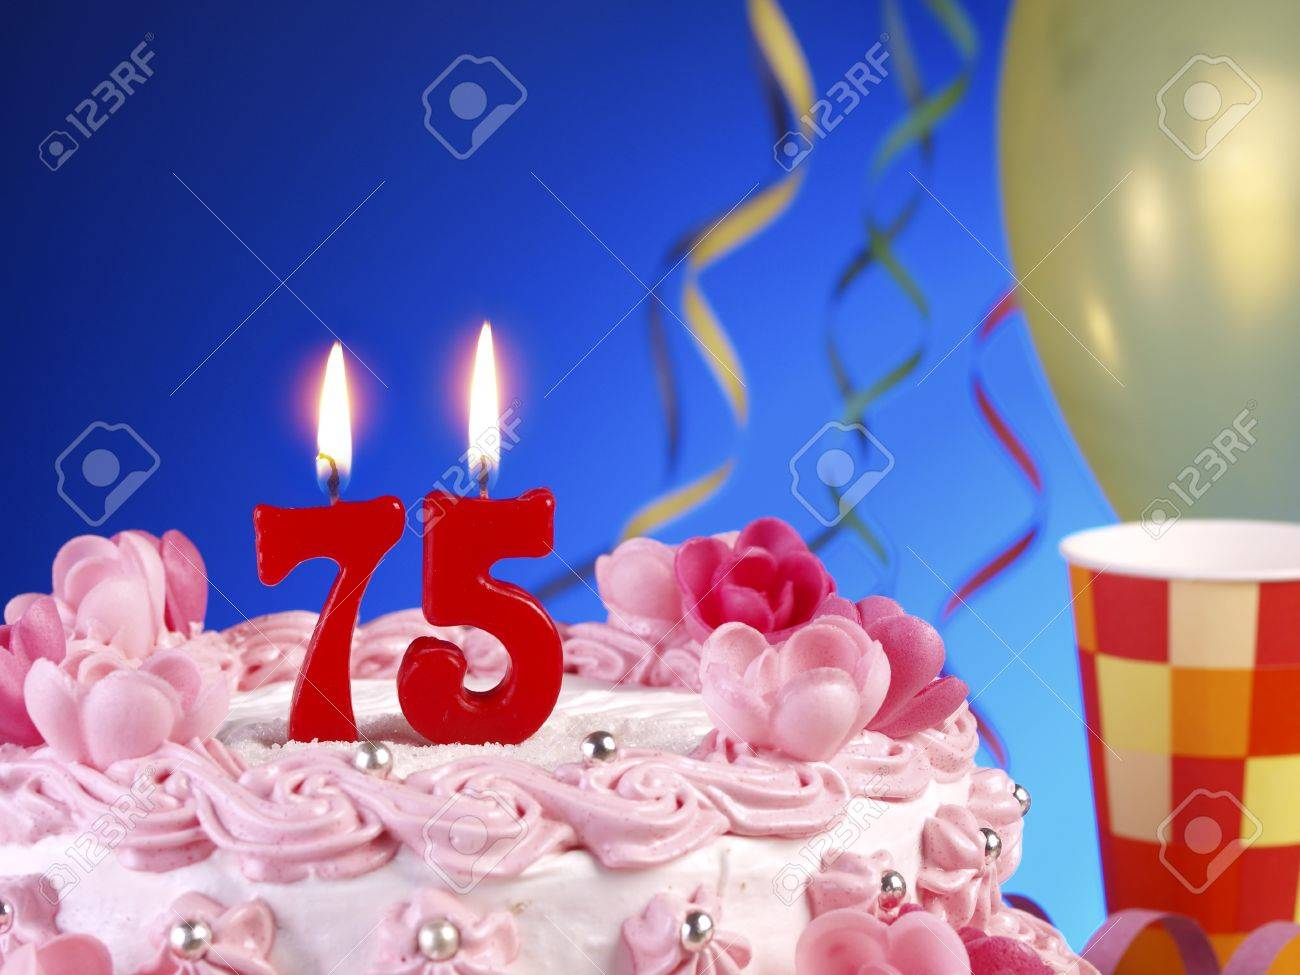 Birthday Cake With Red Candles Showing Nr 75 Stock Photo